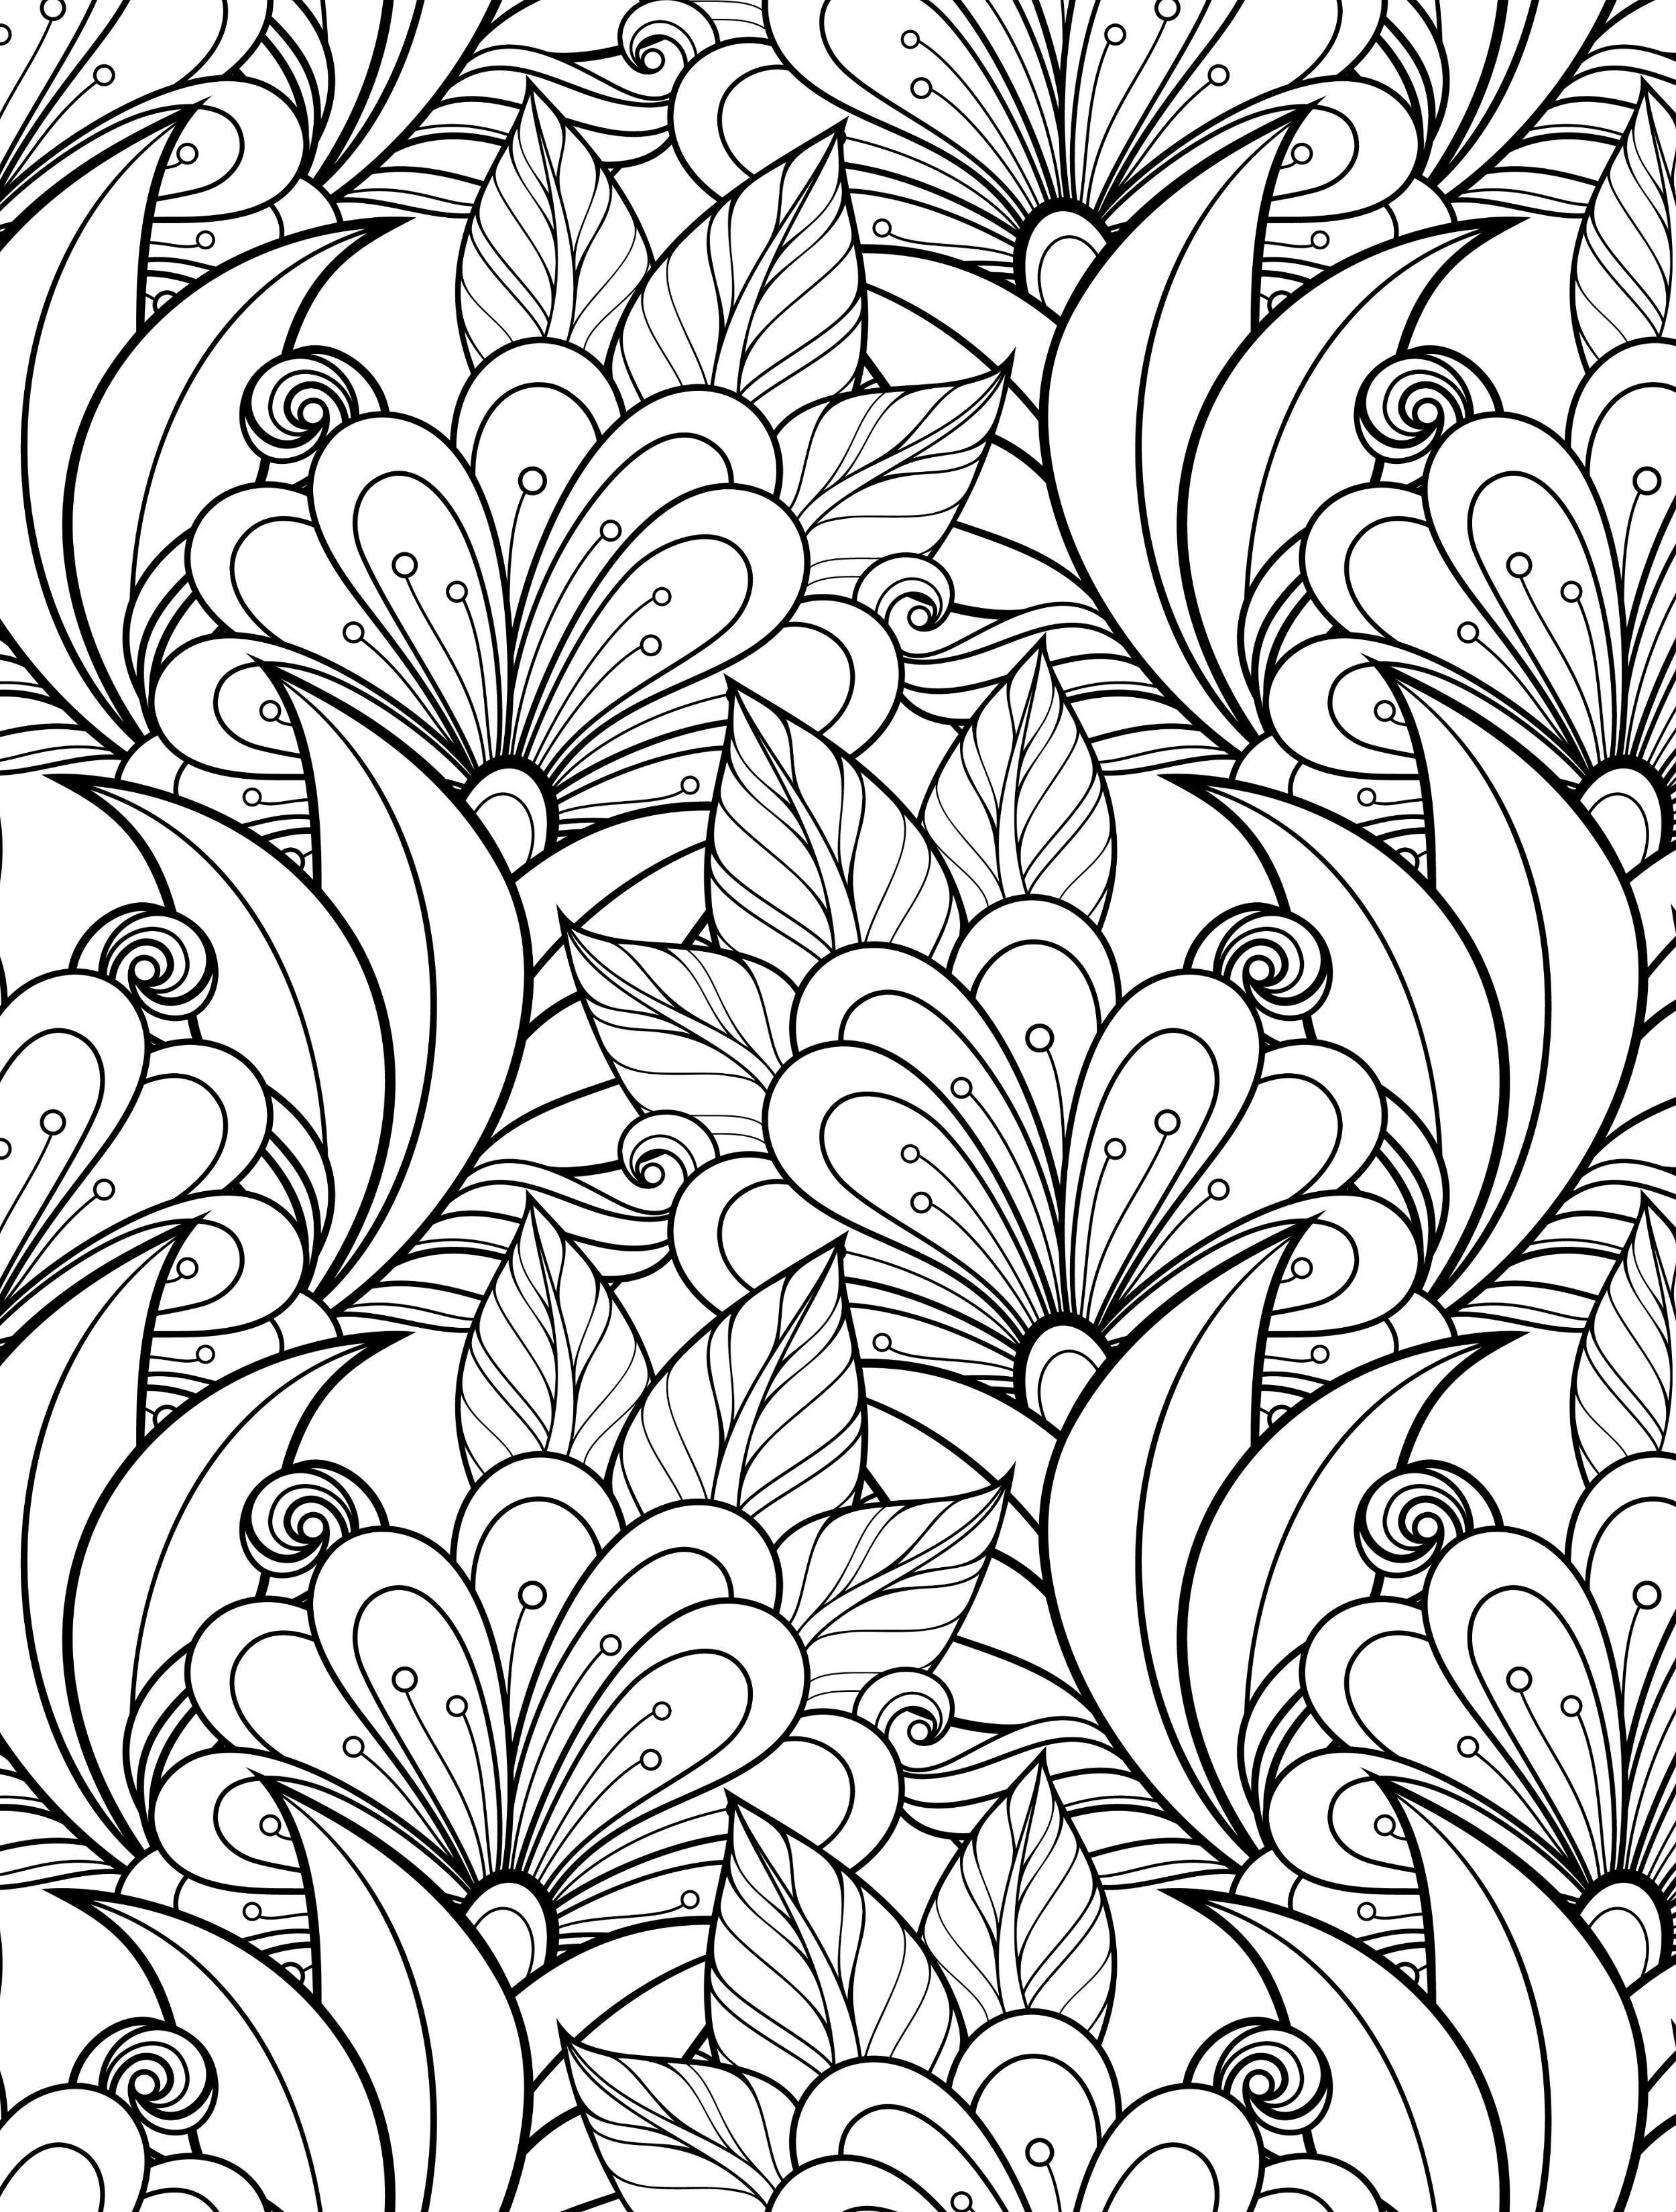 coloring pages for adults patterns flowers paisley flowers adult coloring pages adults coloring for pages patterns